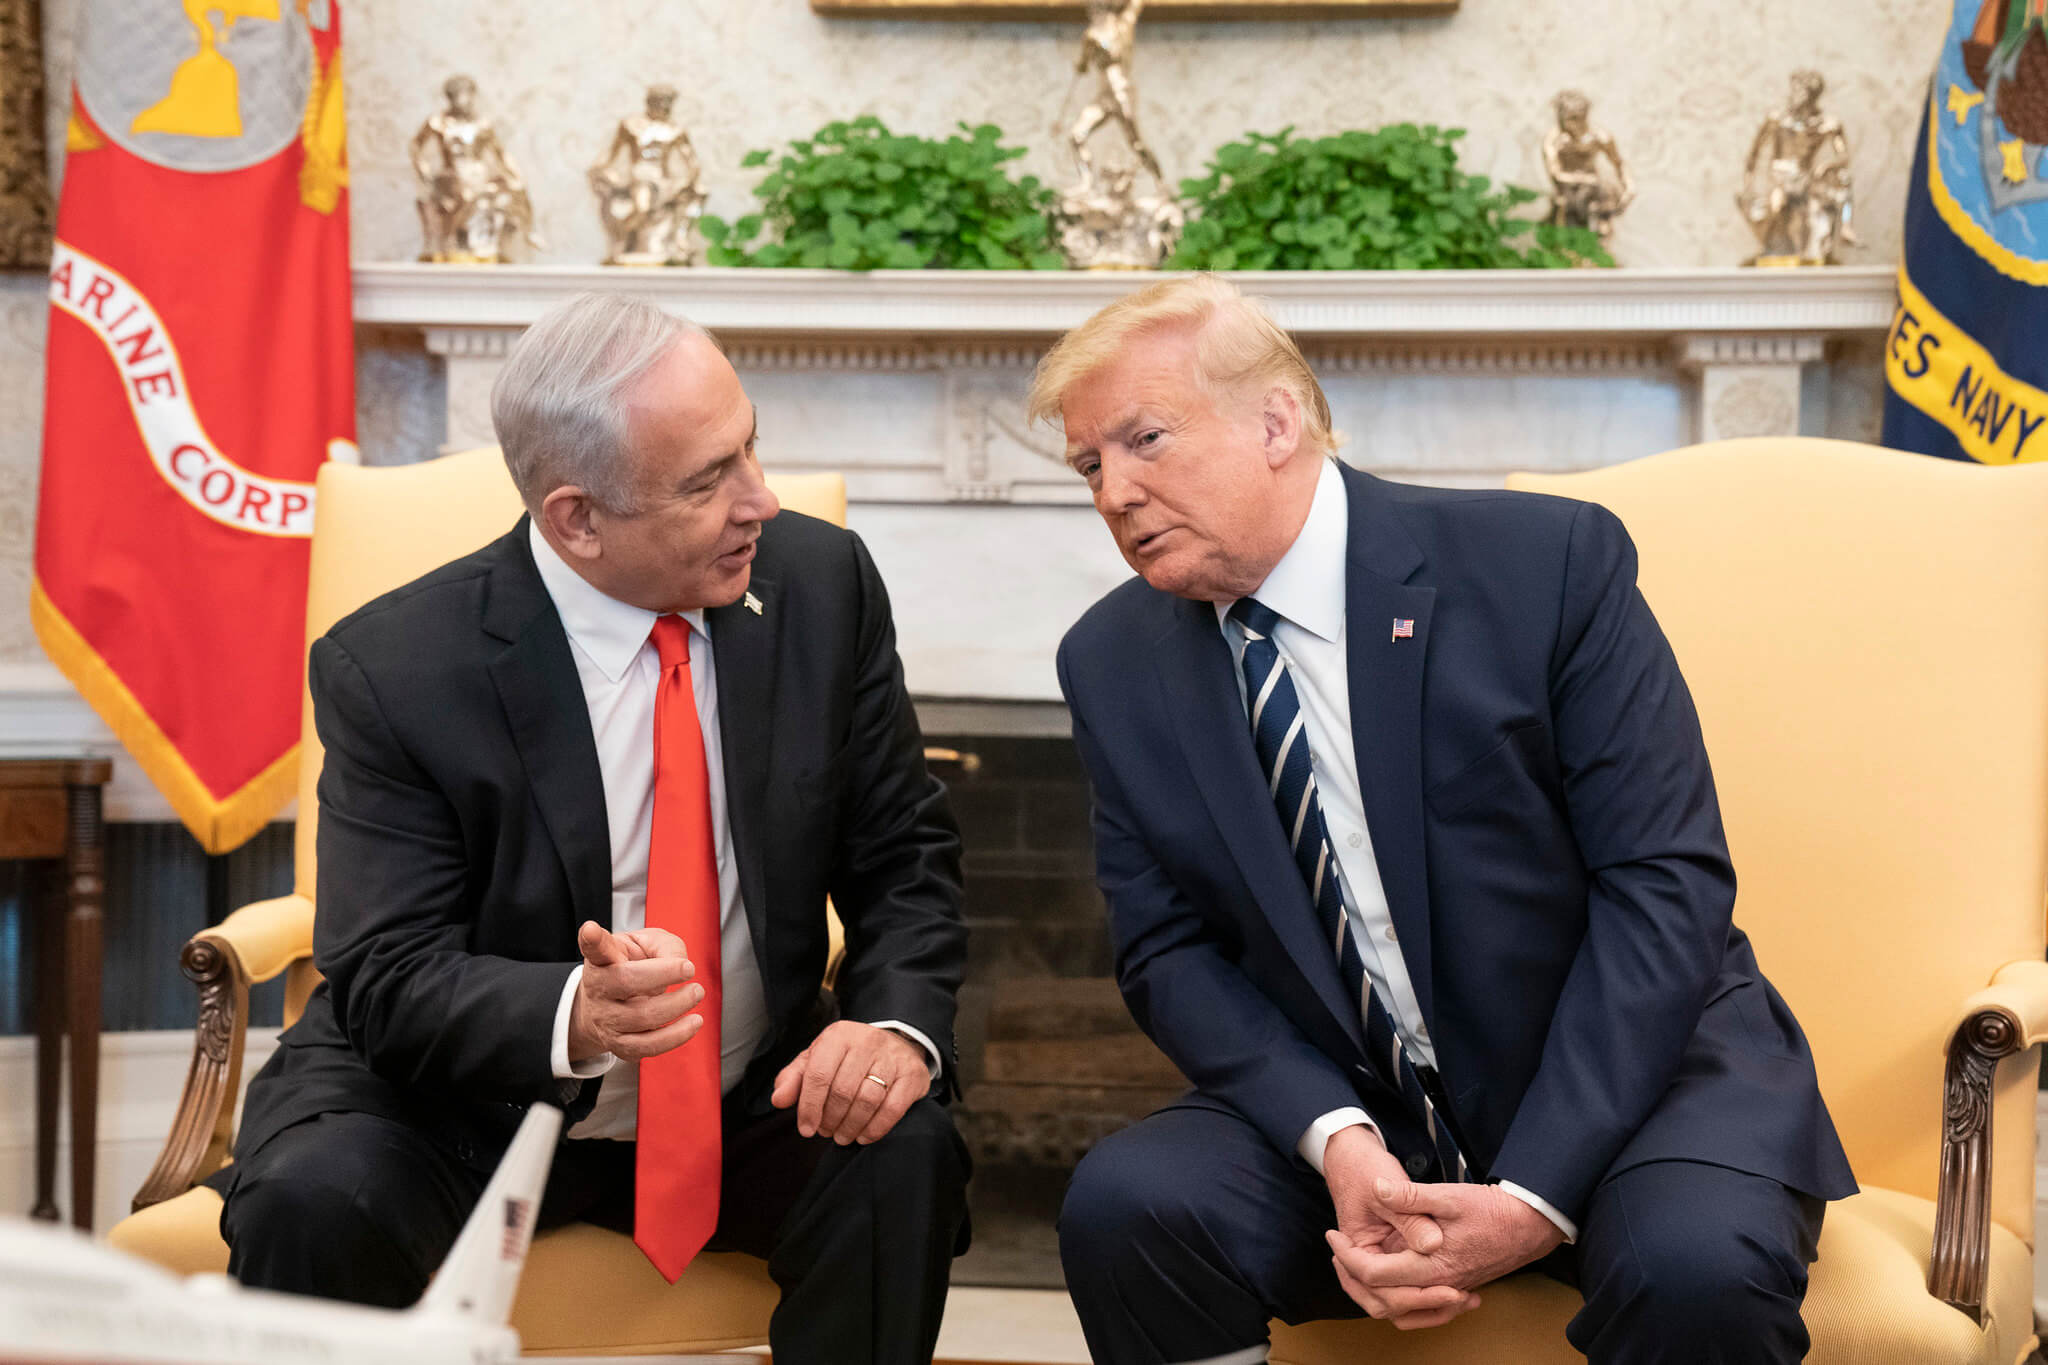 The 'Deal of the Century' endorses Zionist ethno-religious claims – Mondoweiss